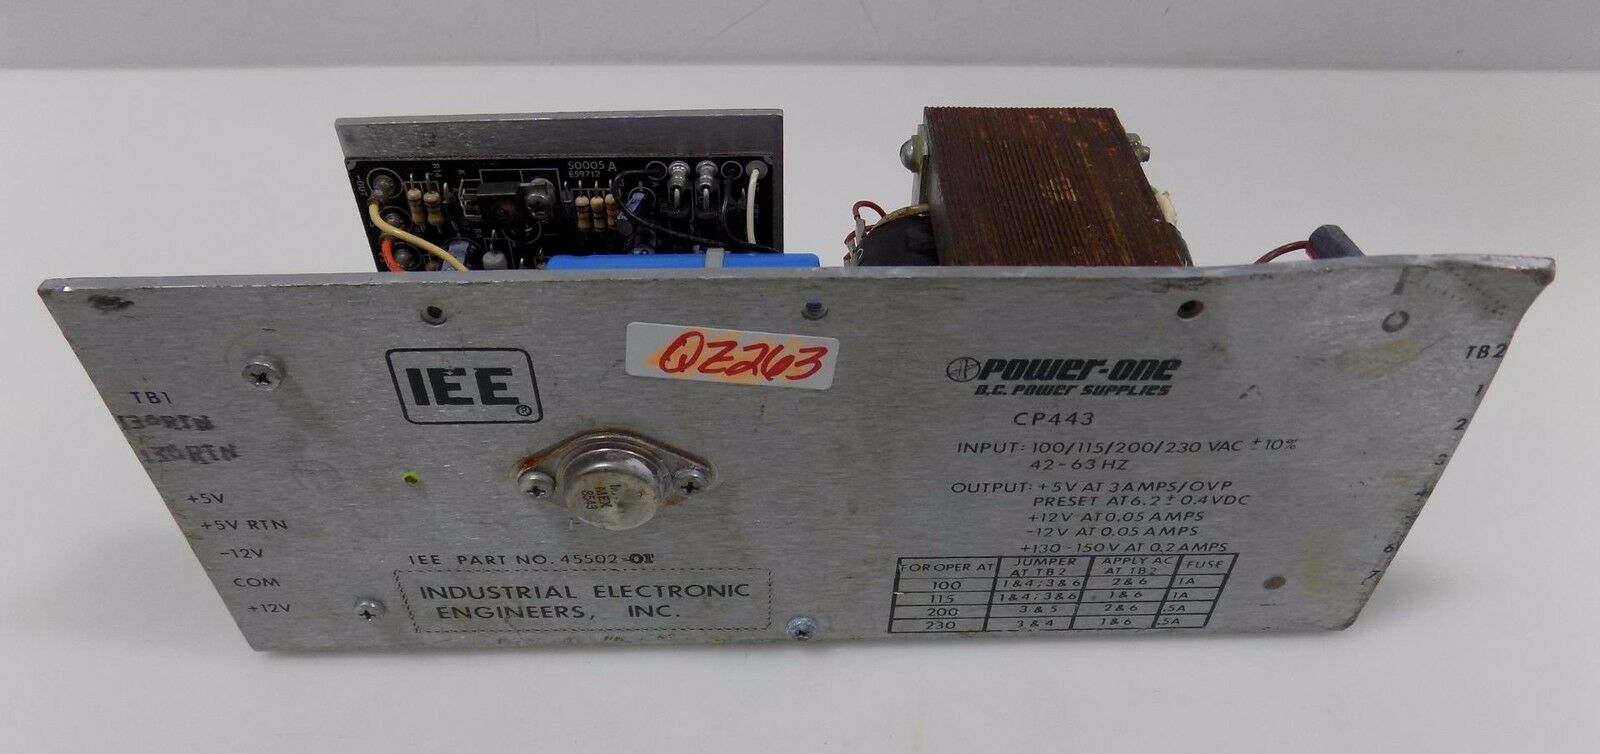 IEE POWER-ONE DC POWER SUPPLY CP443